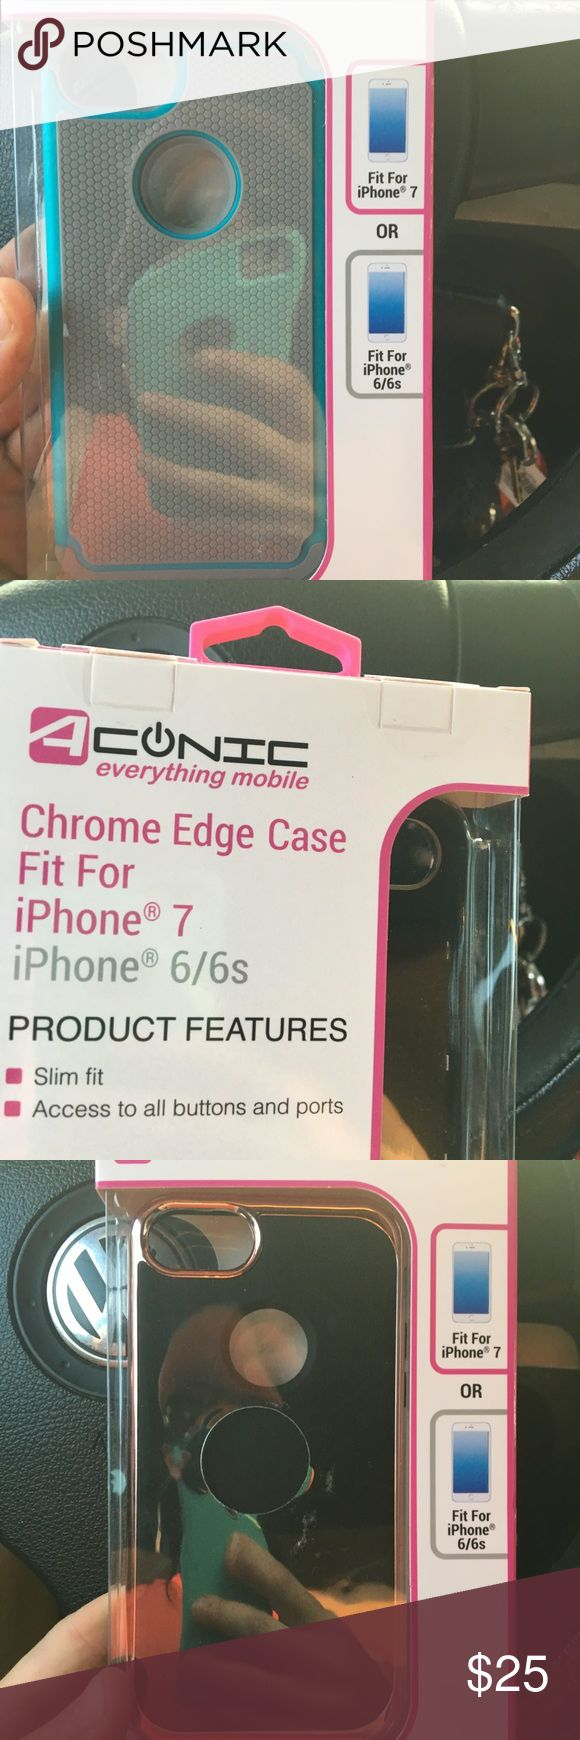 NEW IPHONE CASES 6/6s/7/7plus BUY 1 for $5, 2 for $9 3 for $12 or all 6 for $20! And I'll add in a brand new charger OR new headphones for FREE Accessories Tablet Cases